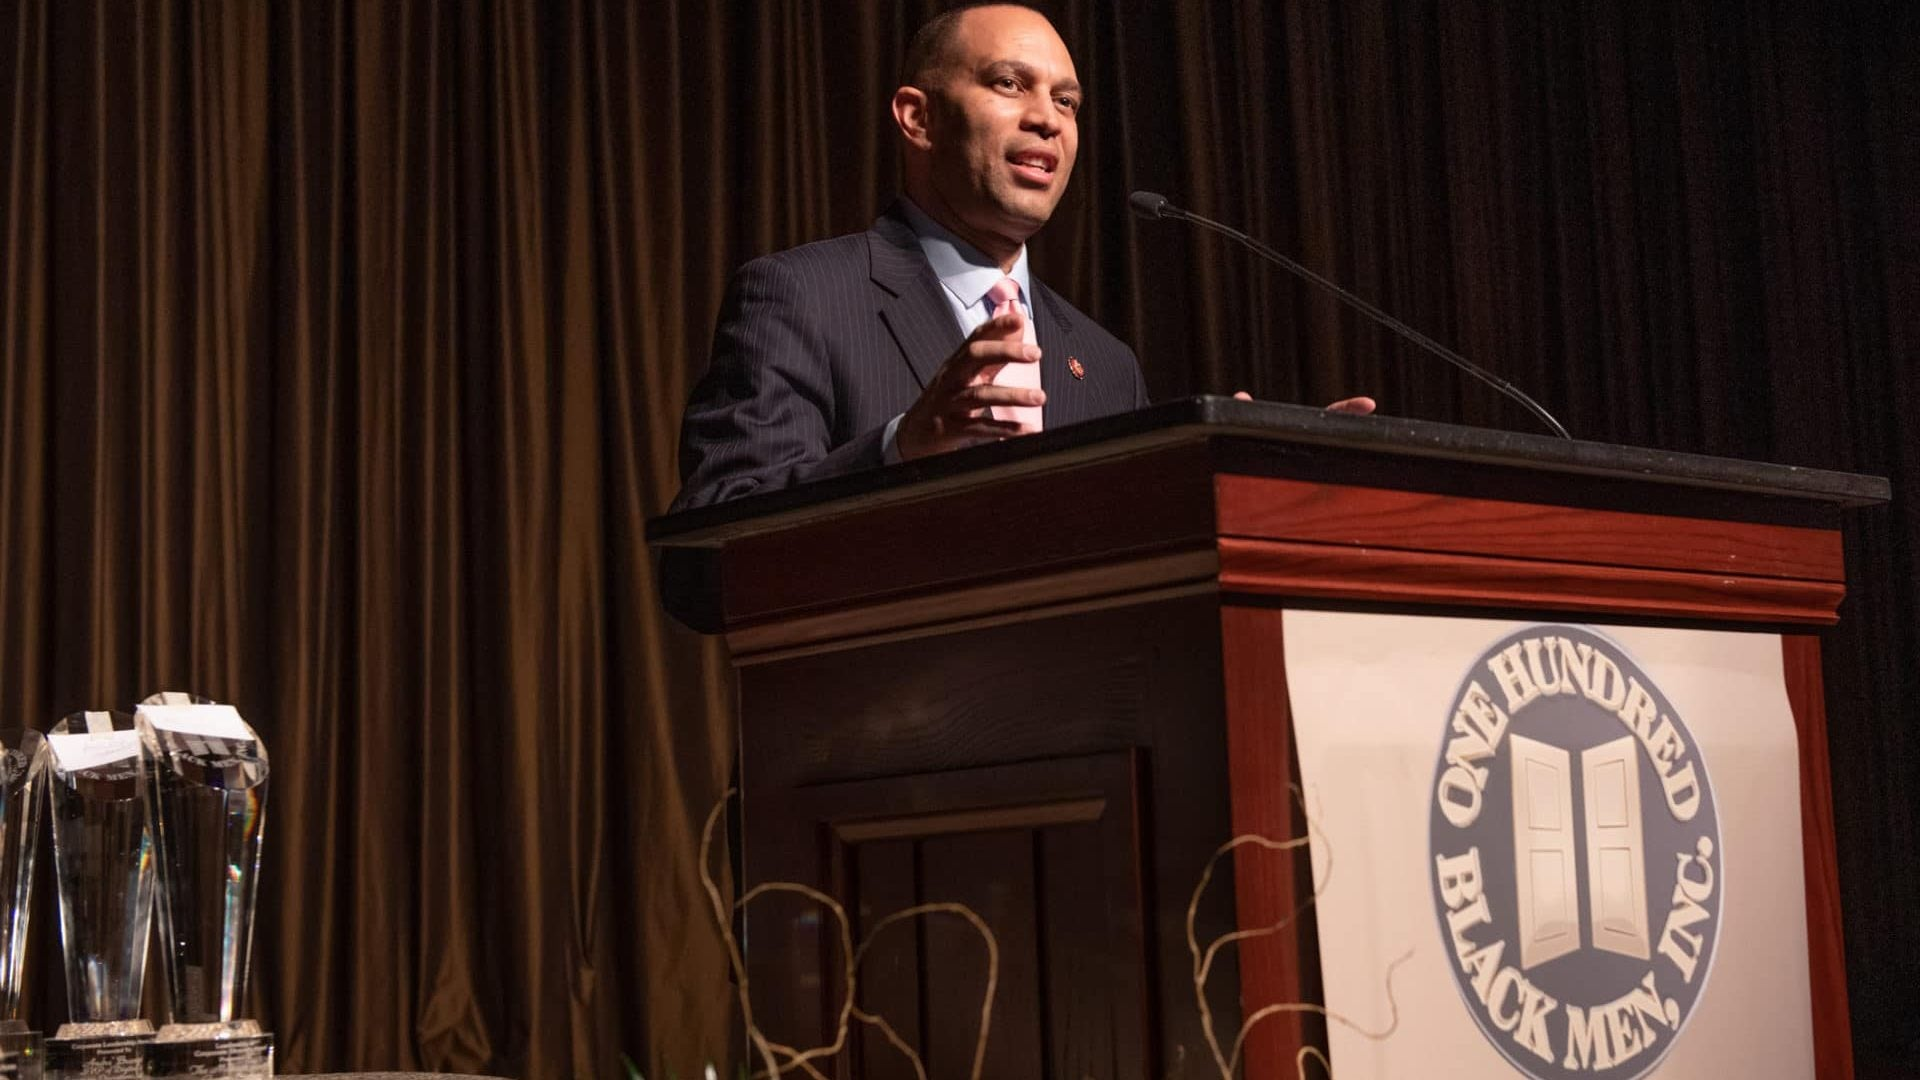 From Hip Hop's Streets To The House Floor: Congressman Hakeem Jeffries Is Bringing It The Brooklyn Way